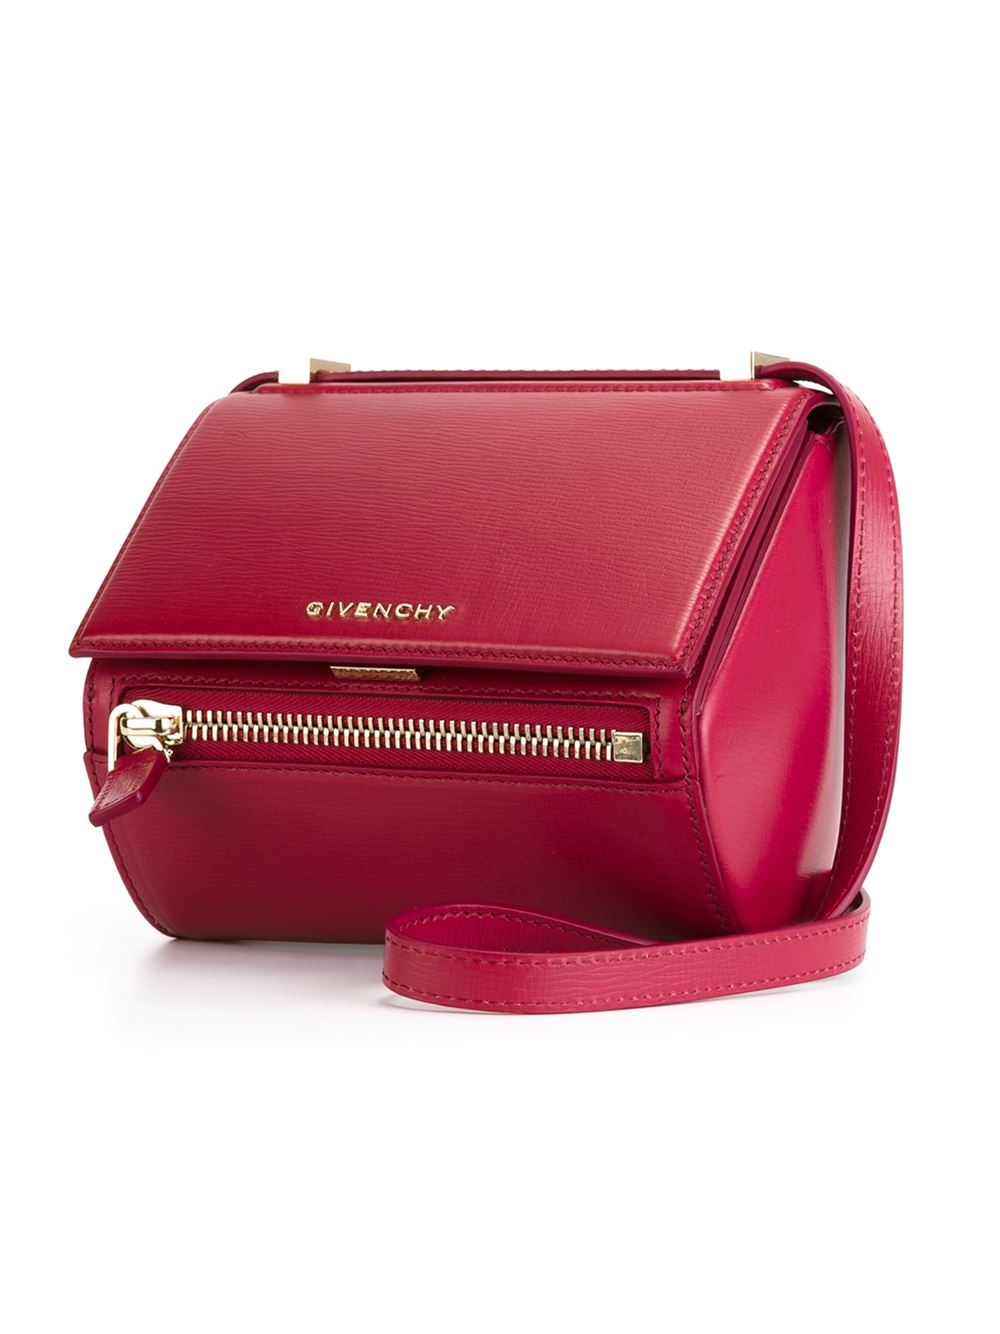 Red Givenchy Mini Pandora Bag  4821d908187d1